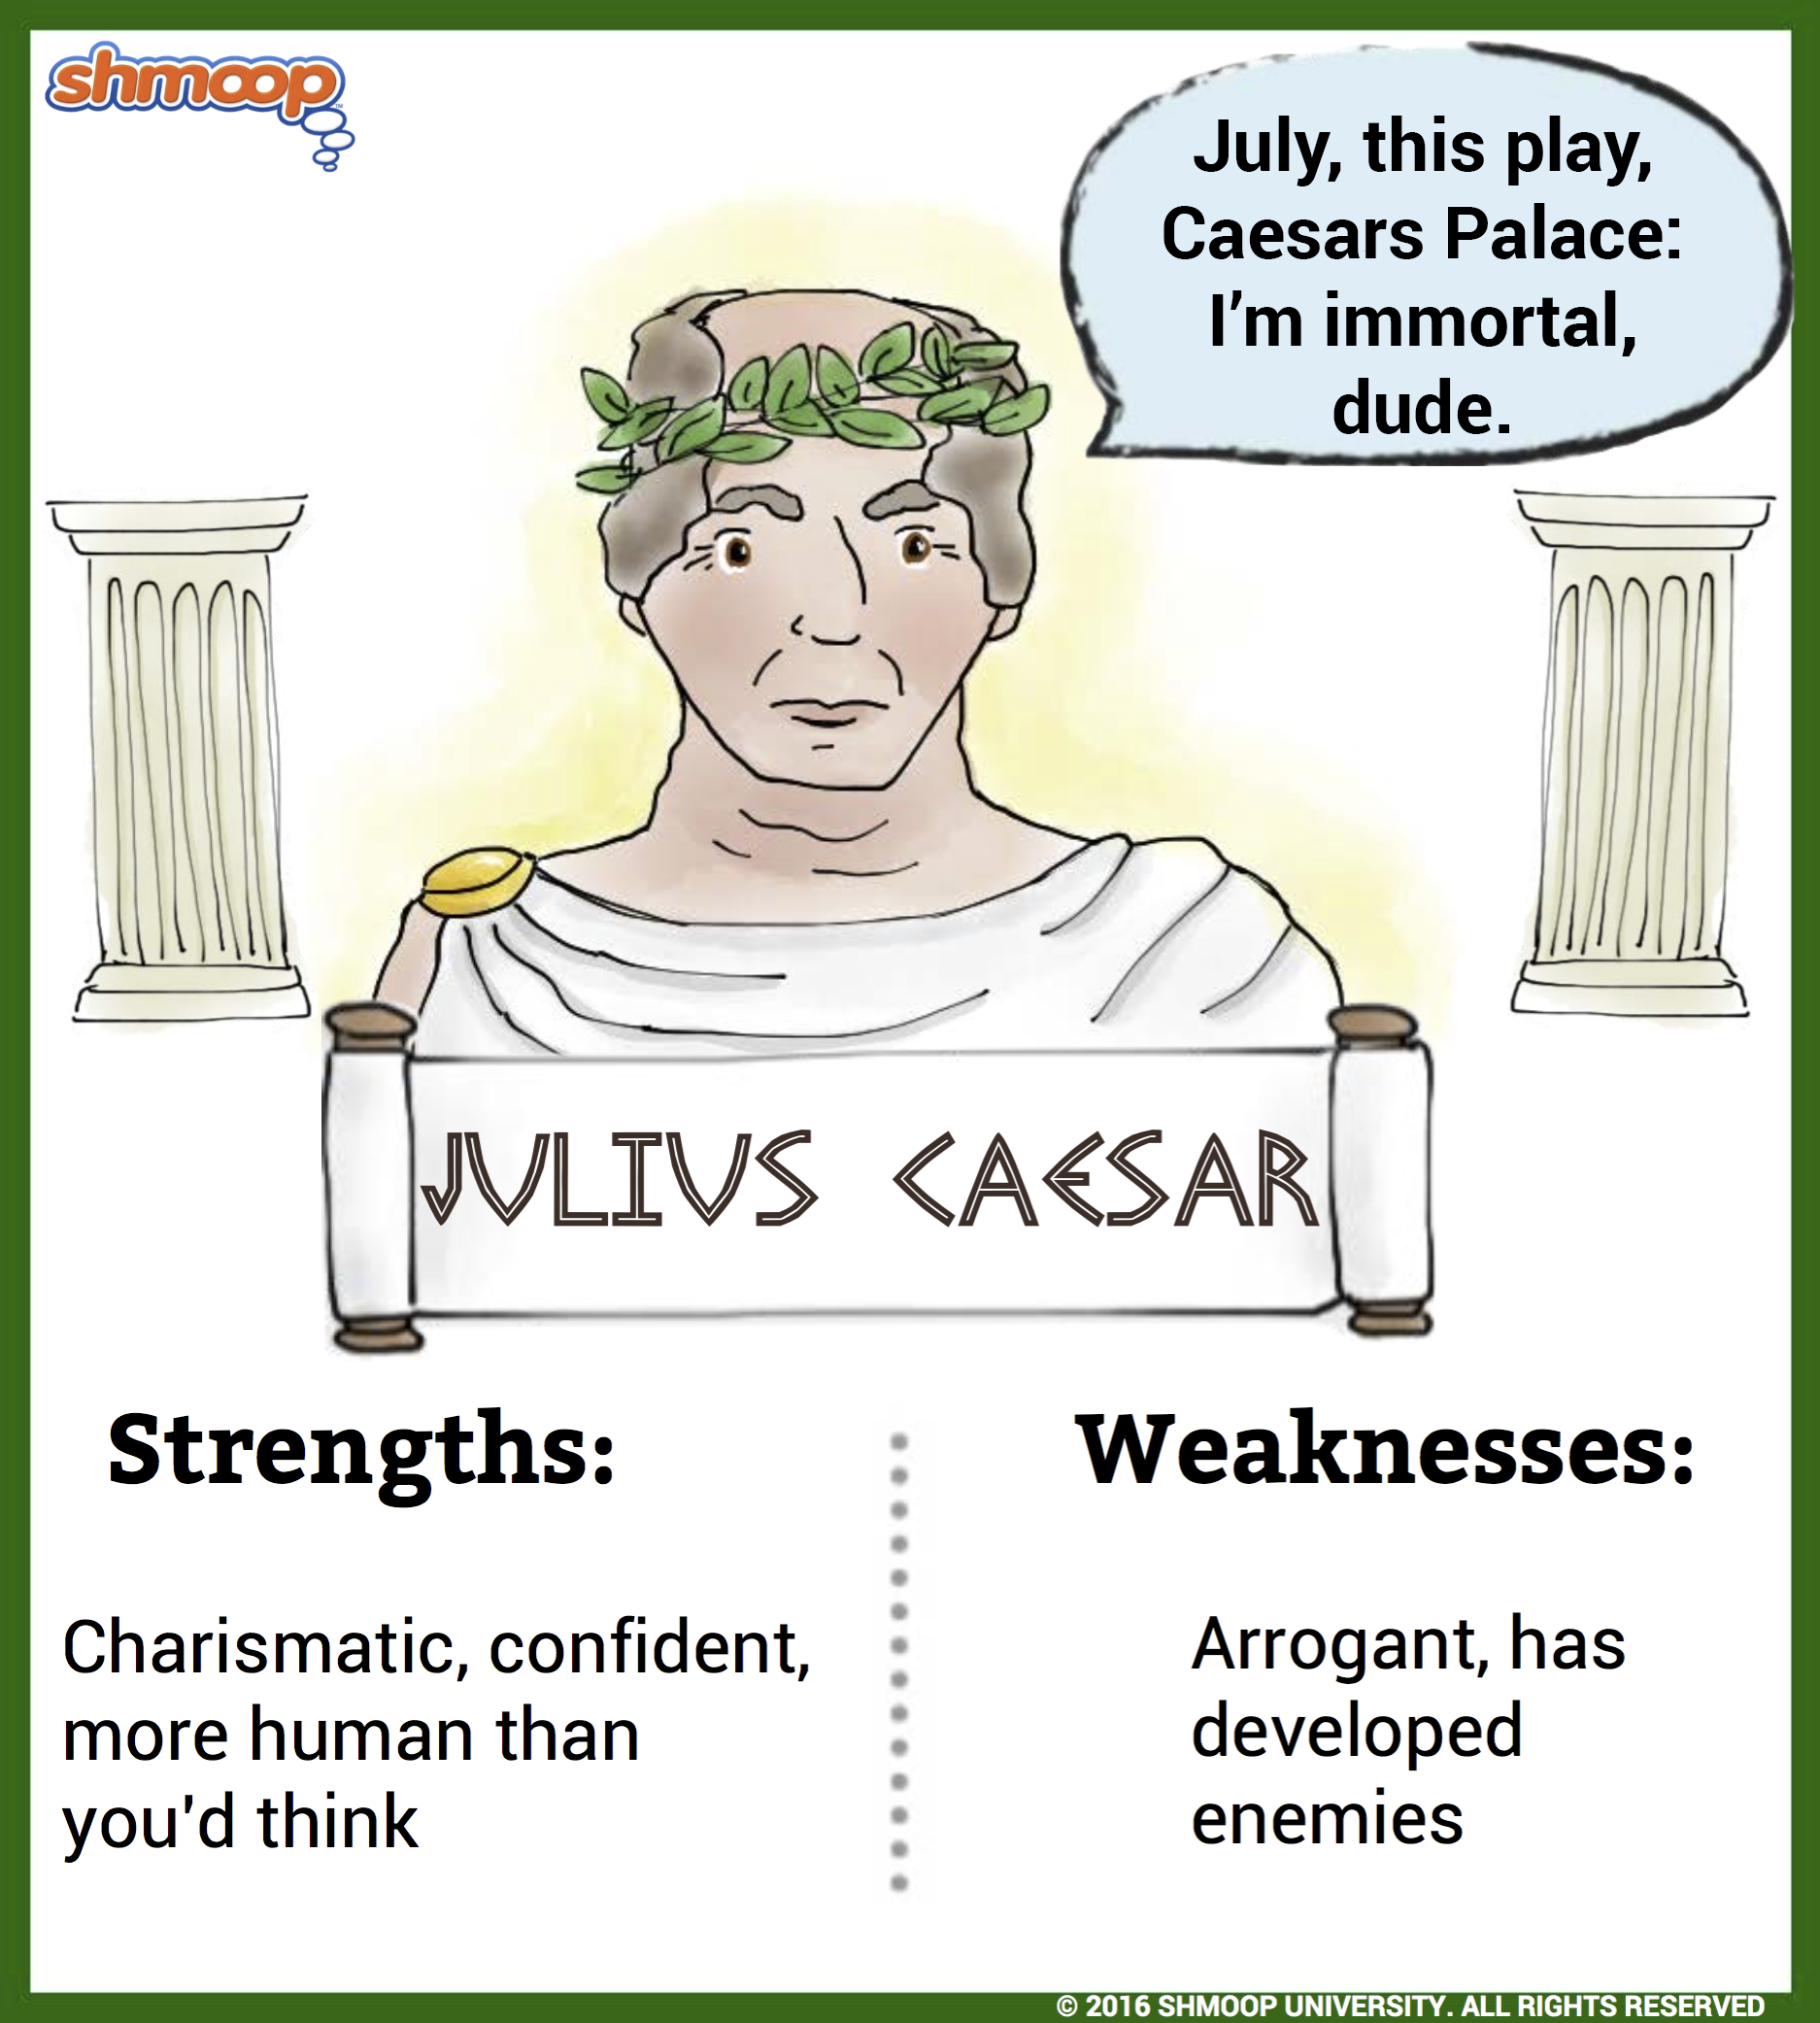 the tragedy of julius caesar essay julius caesar final exam julius  julius caesar in julius caesar click the character infographic to julius caesar